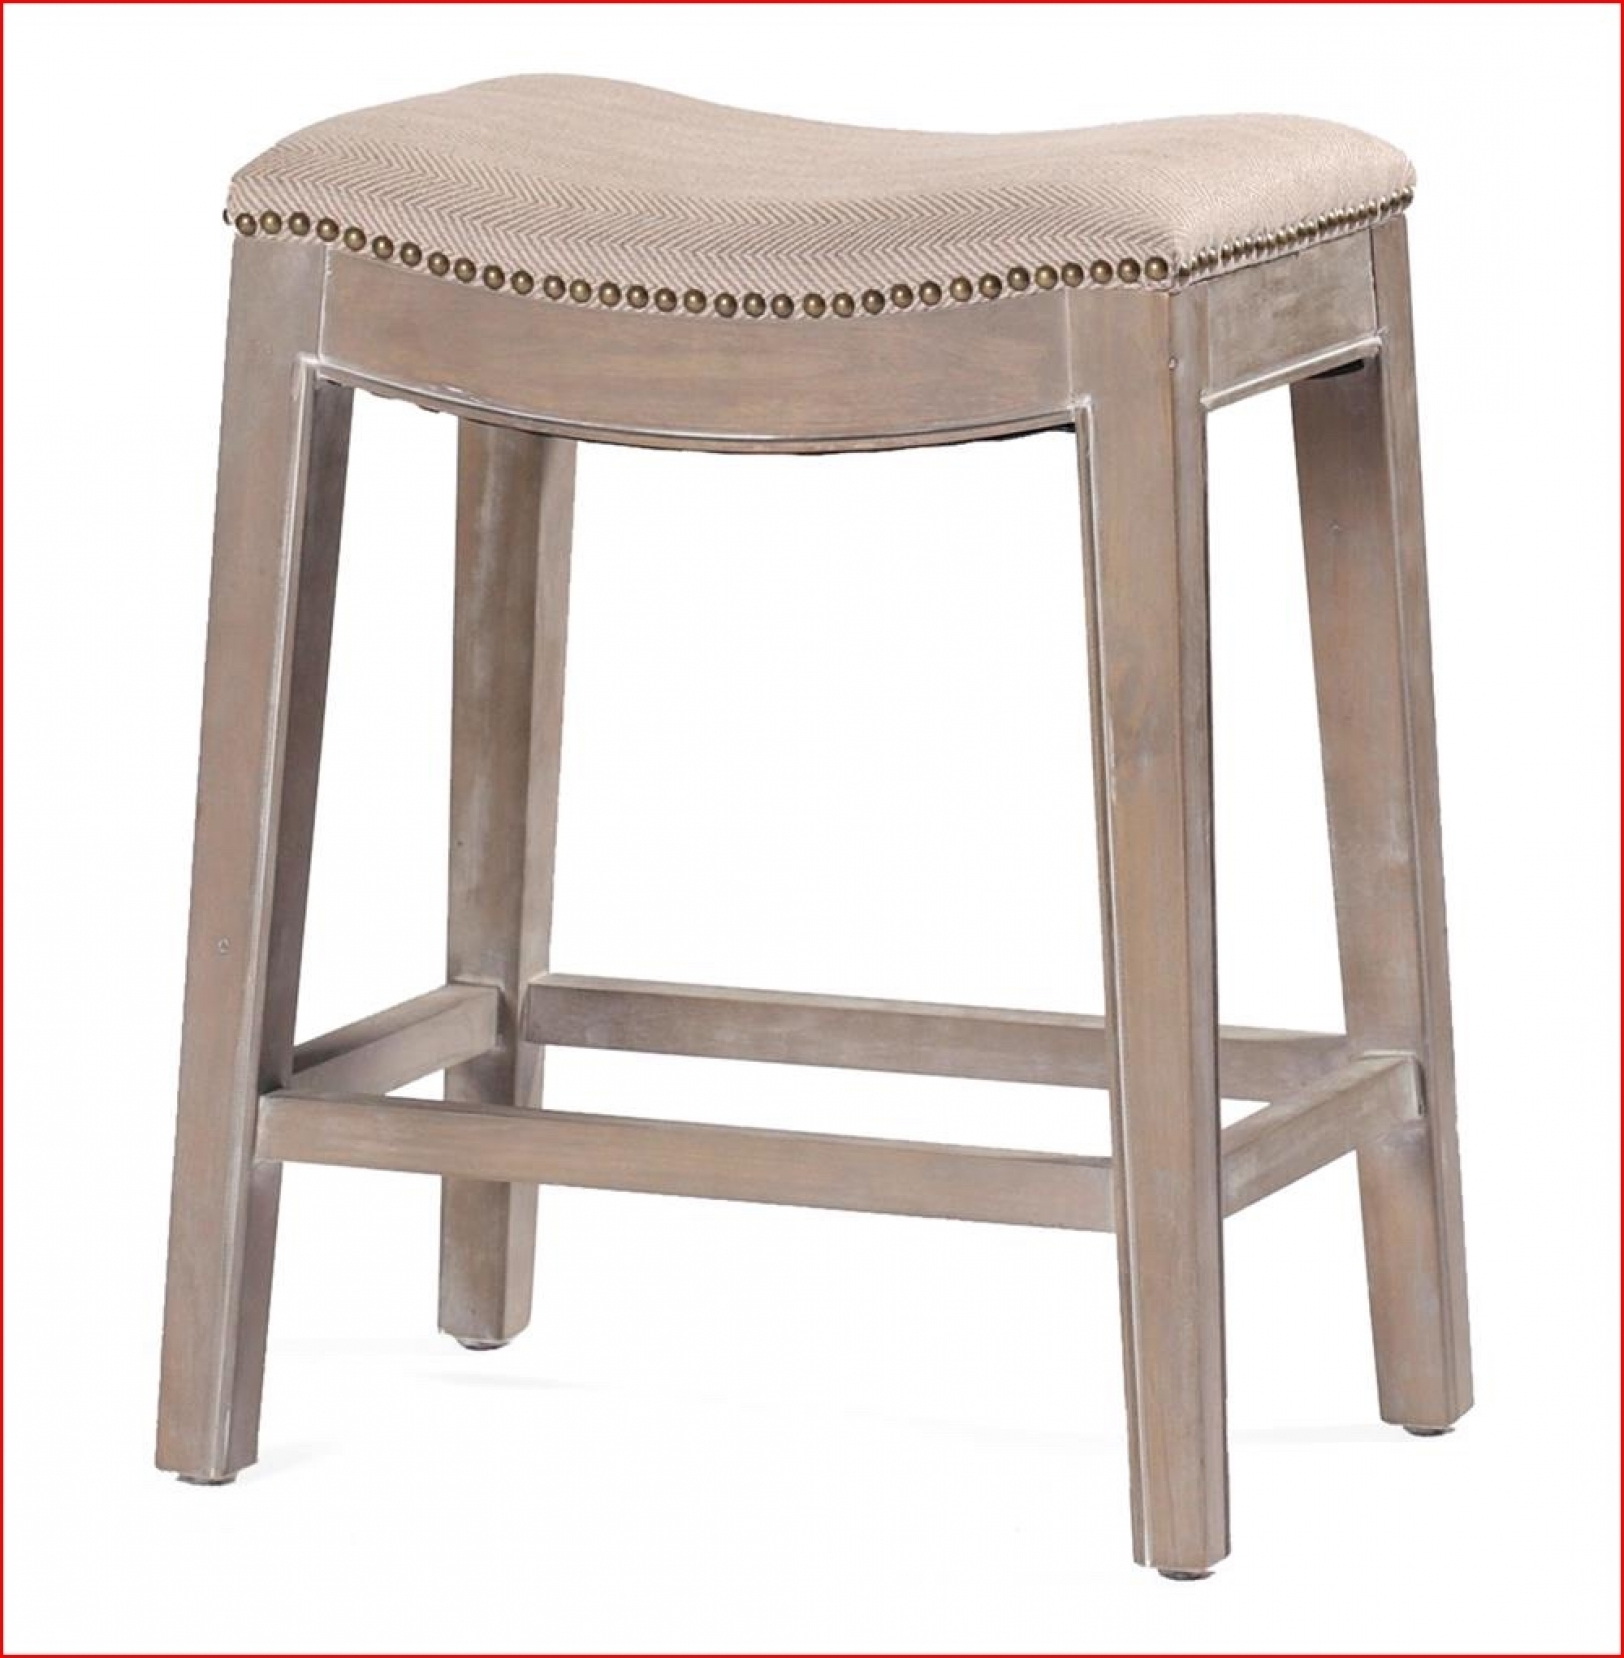 French Country Counter Stools Images That Looks Charming To Inside French Country Counter Stools Decor For Your Kitchen (View 6 of 20)